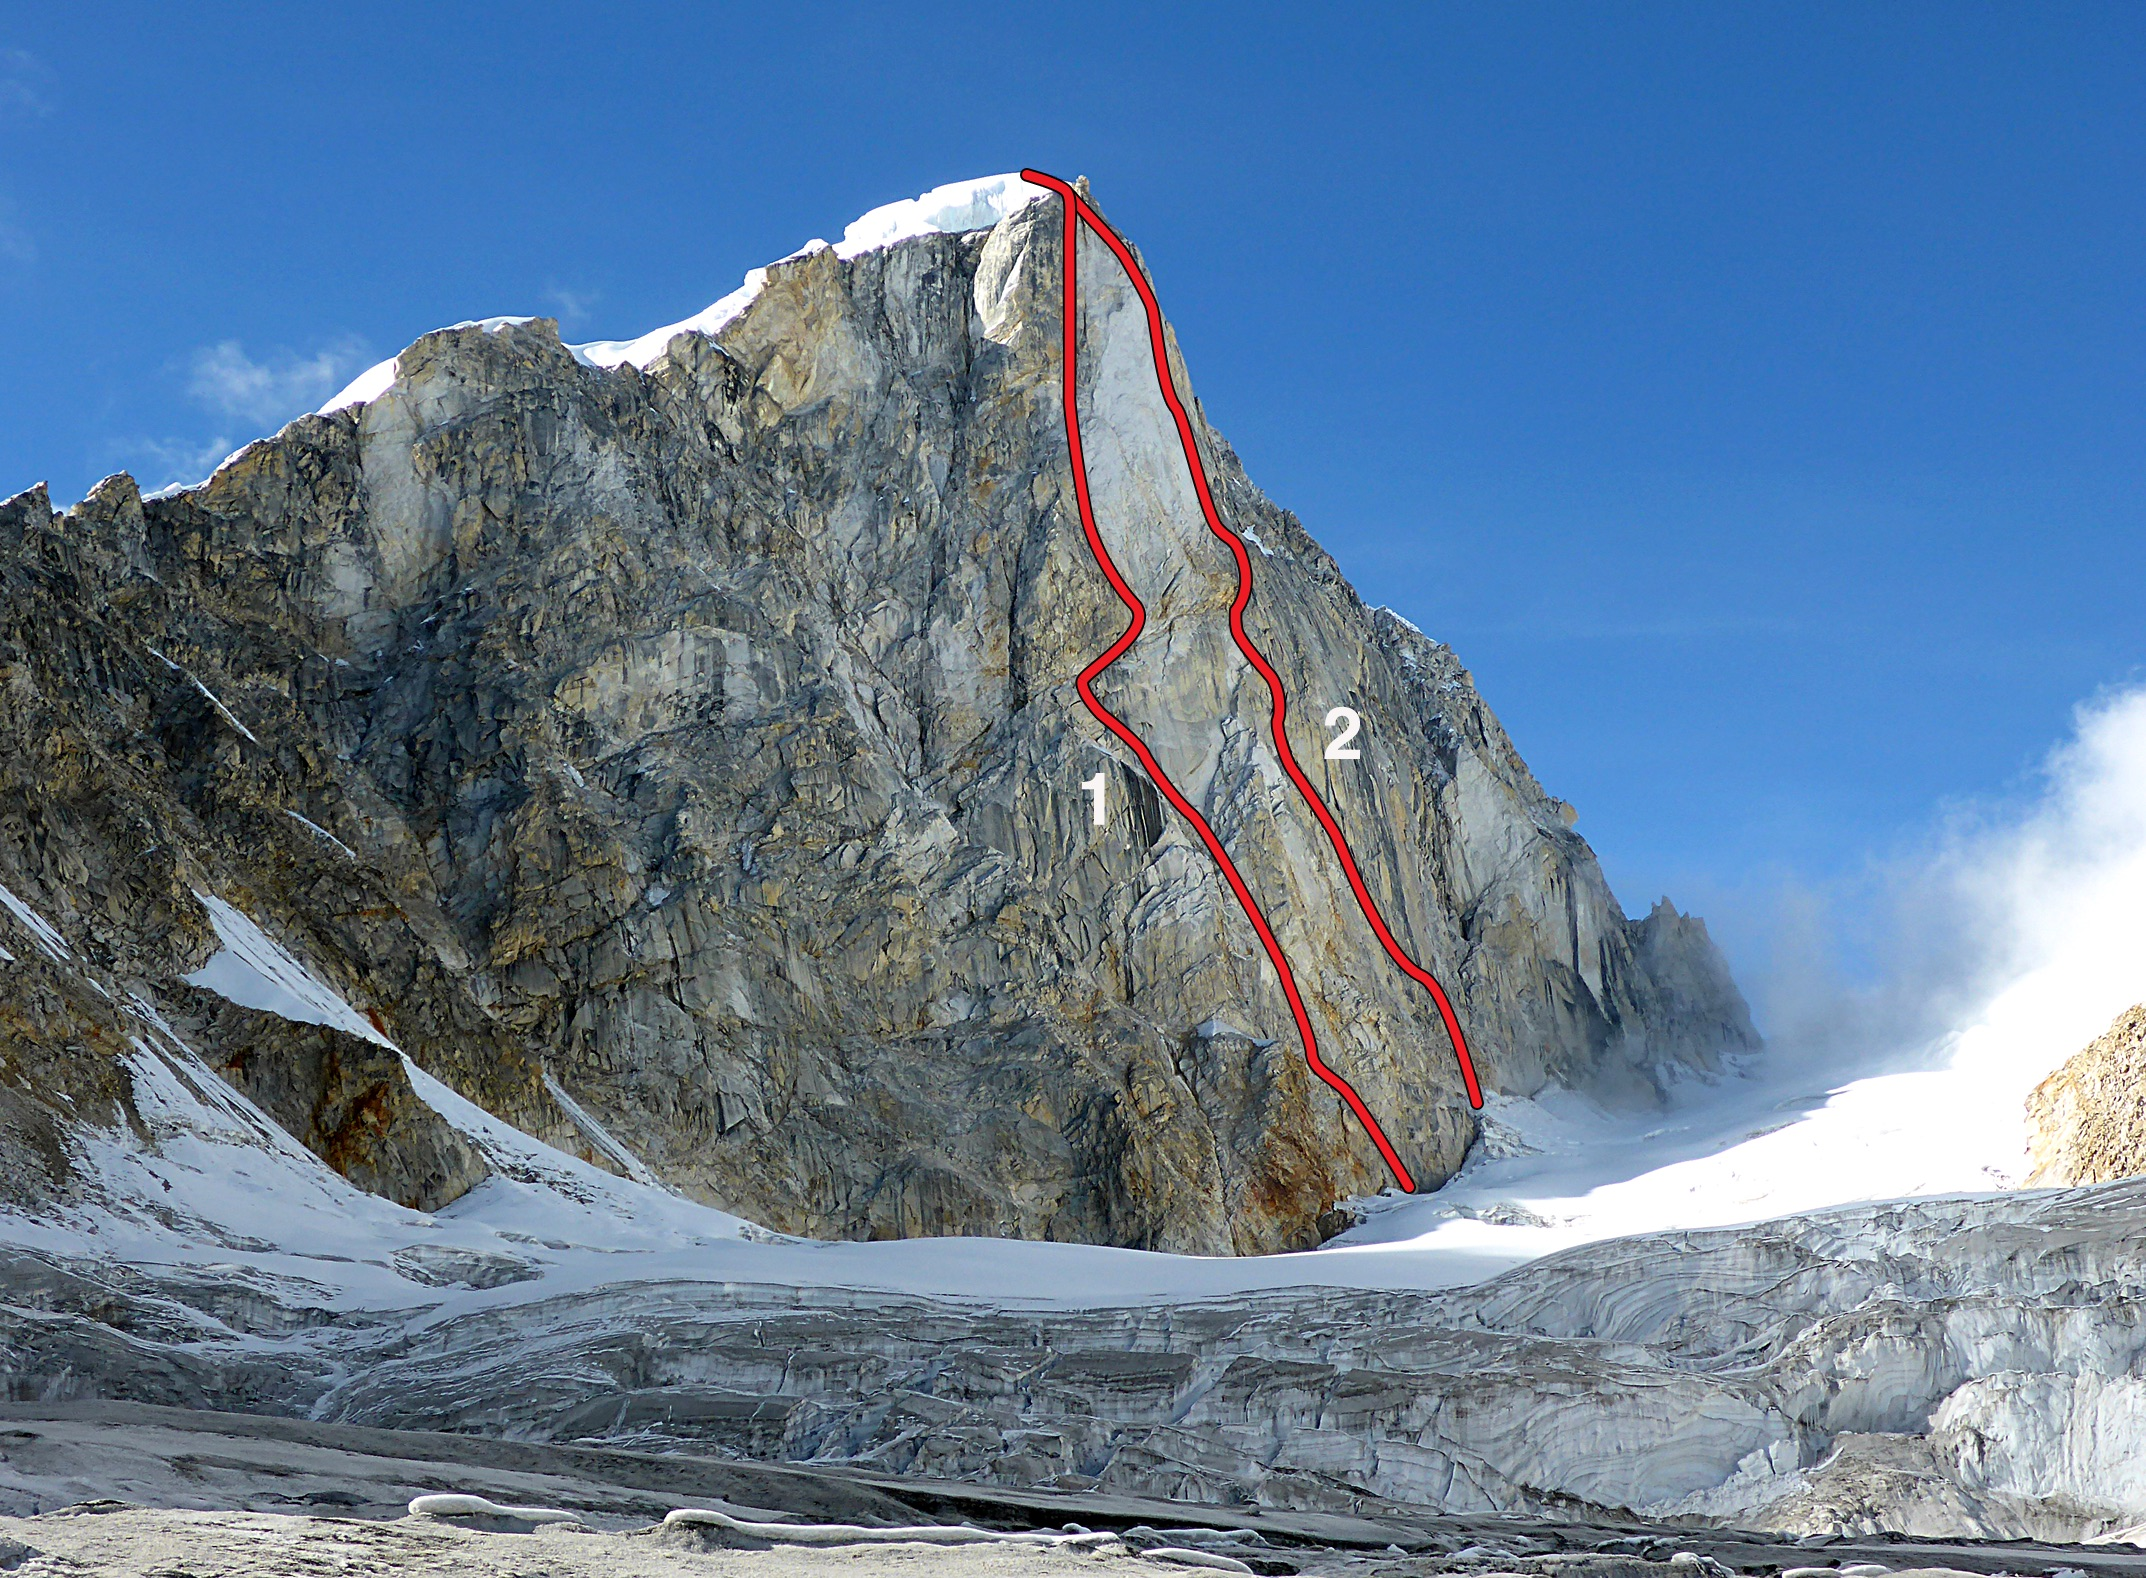 The southeast face of Larkya Peak (6,416m), showing the approximate lines of (1) Georgian Route, the first ascent of the peak, and (2) Directa Ecuatoriana. Both routes were climbed in autumn of 2017.